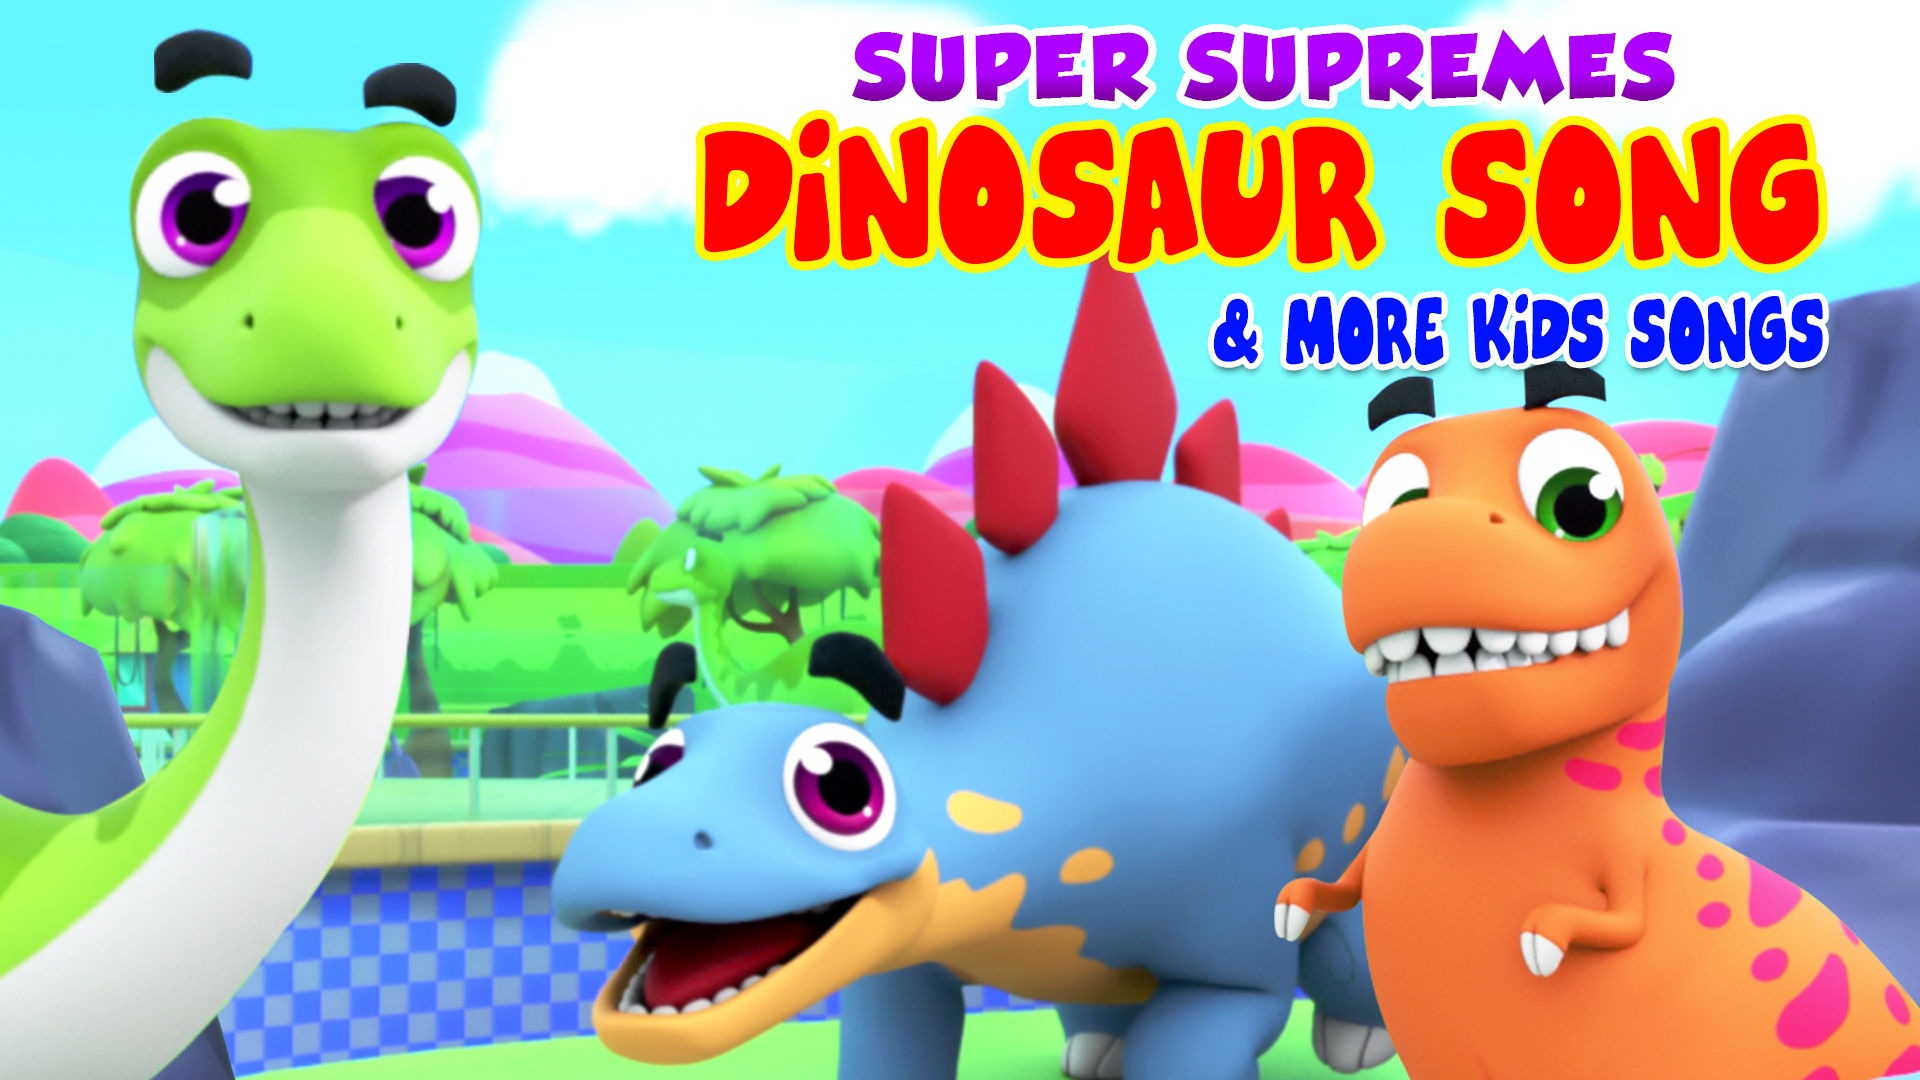 Super Supremes Dinosaur Song & More Kids Songs